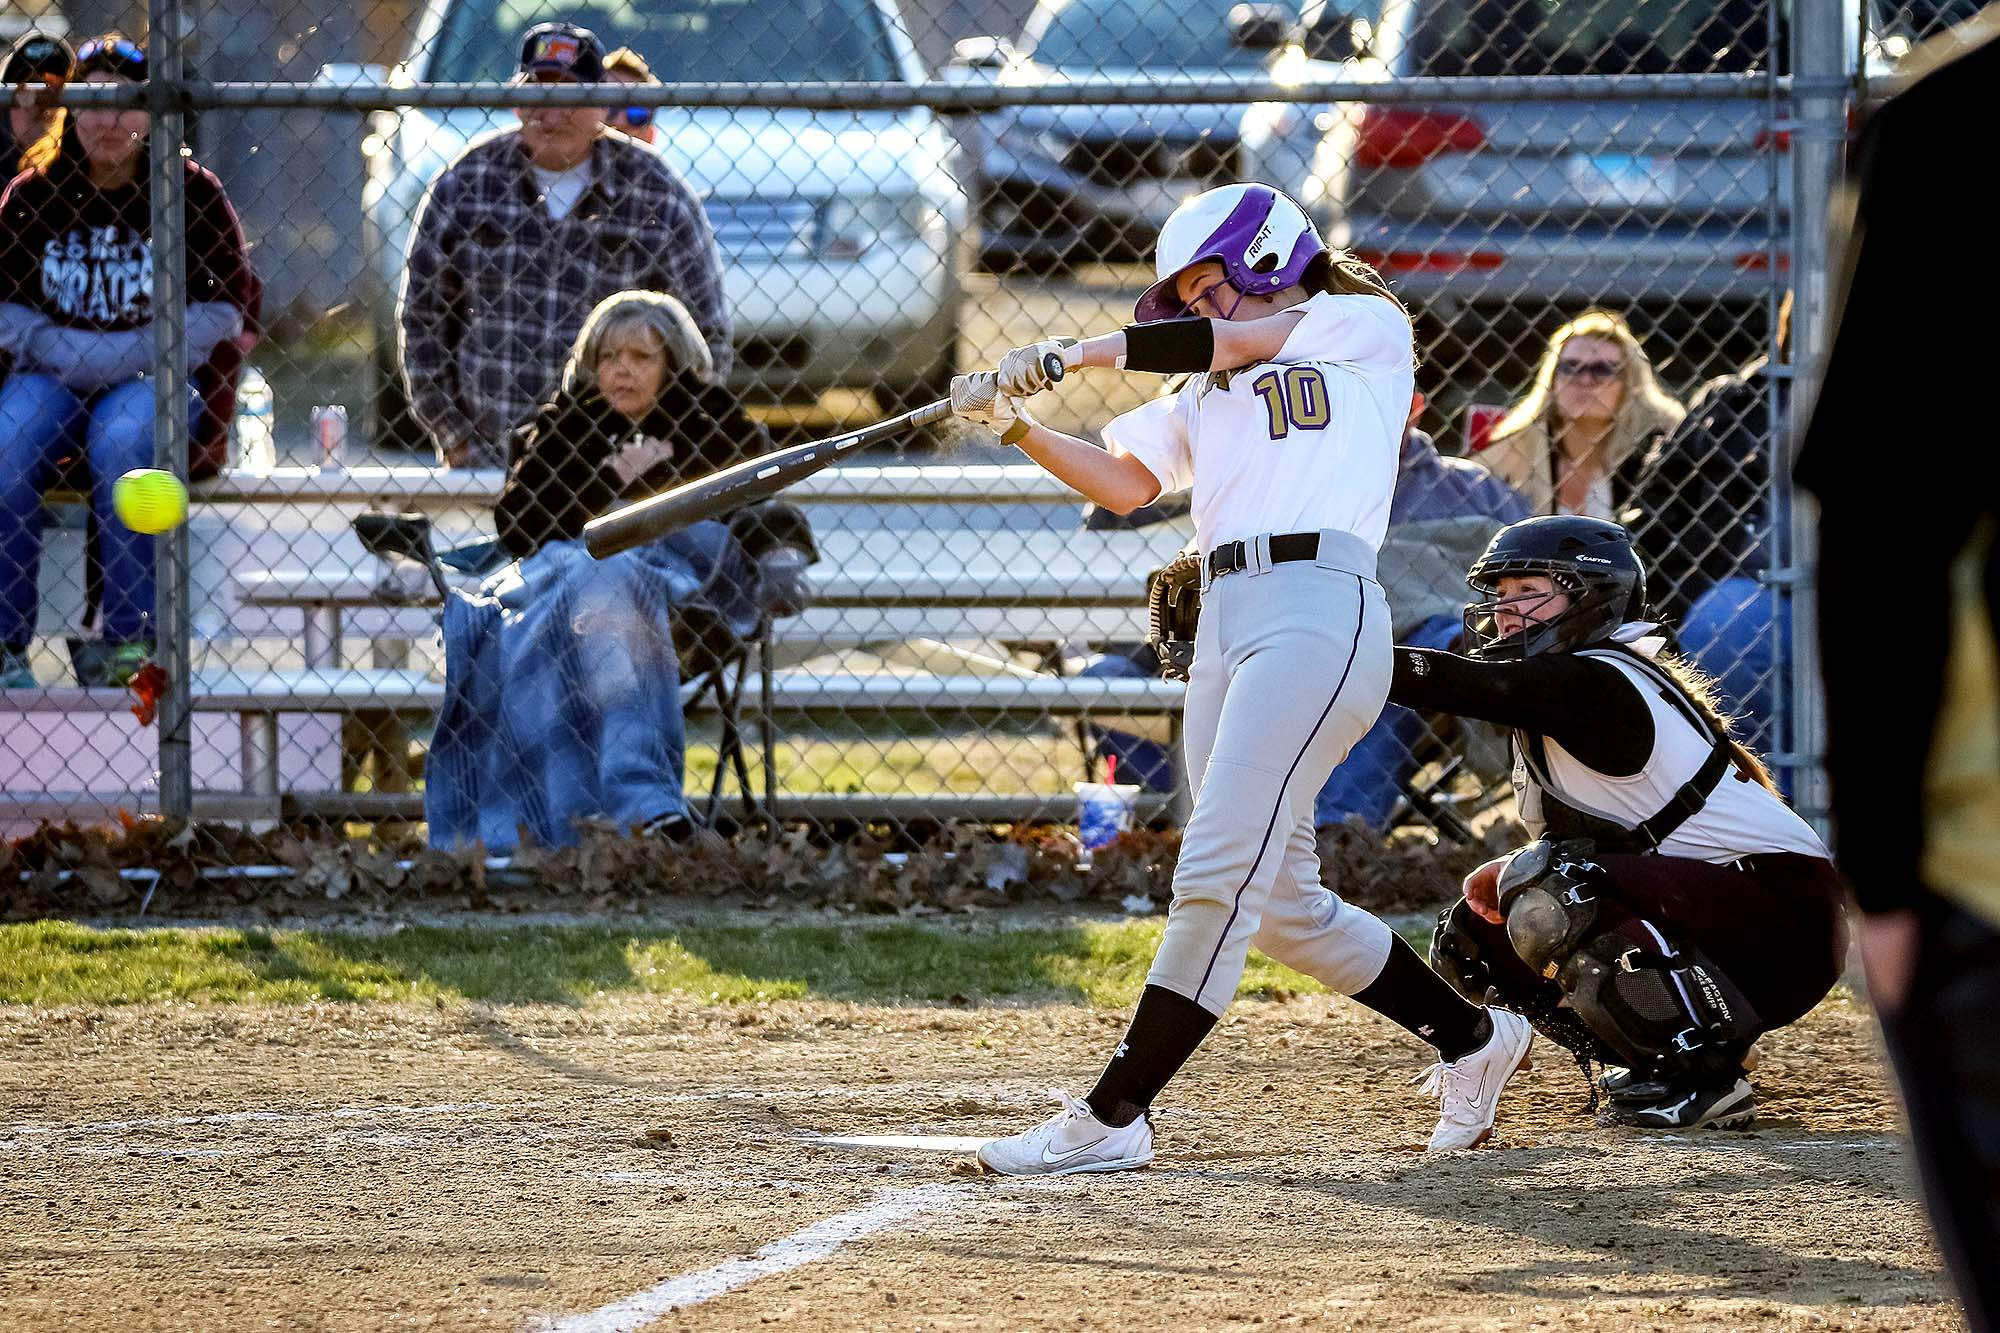 Lexie Mitchell was 3-for-3 with an RBI and a run scored in the Eagles' loss to Pope County Monday at the EHS Sports Complex.